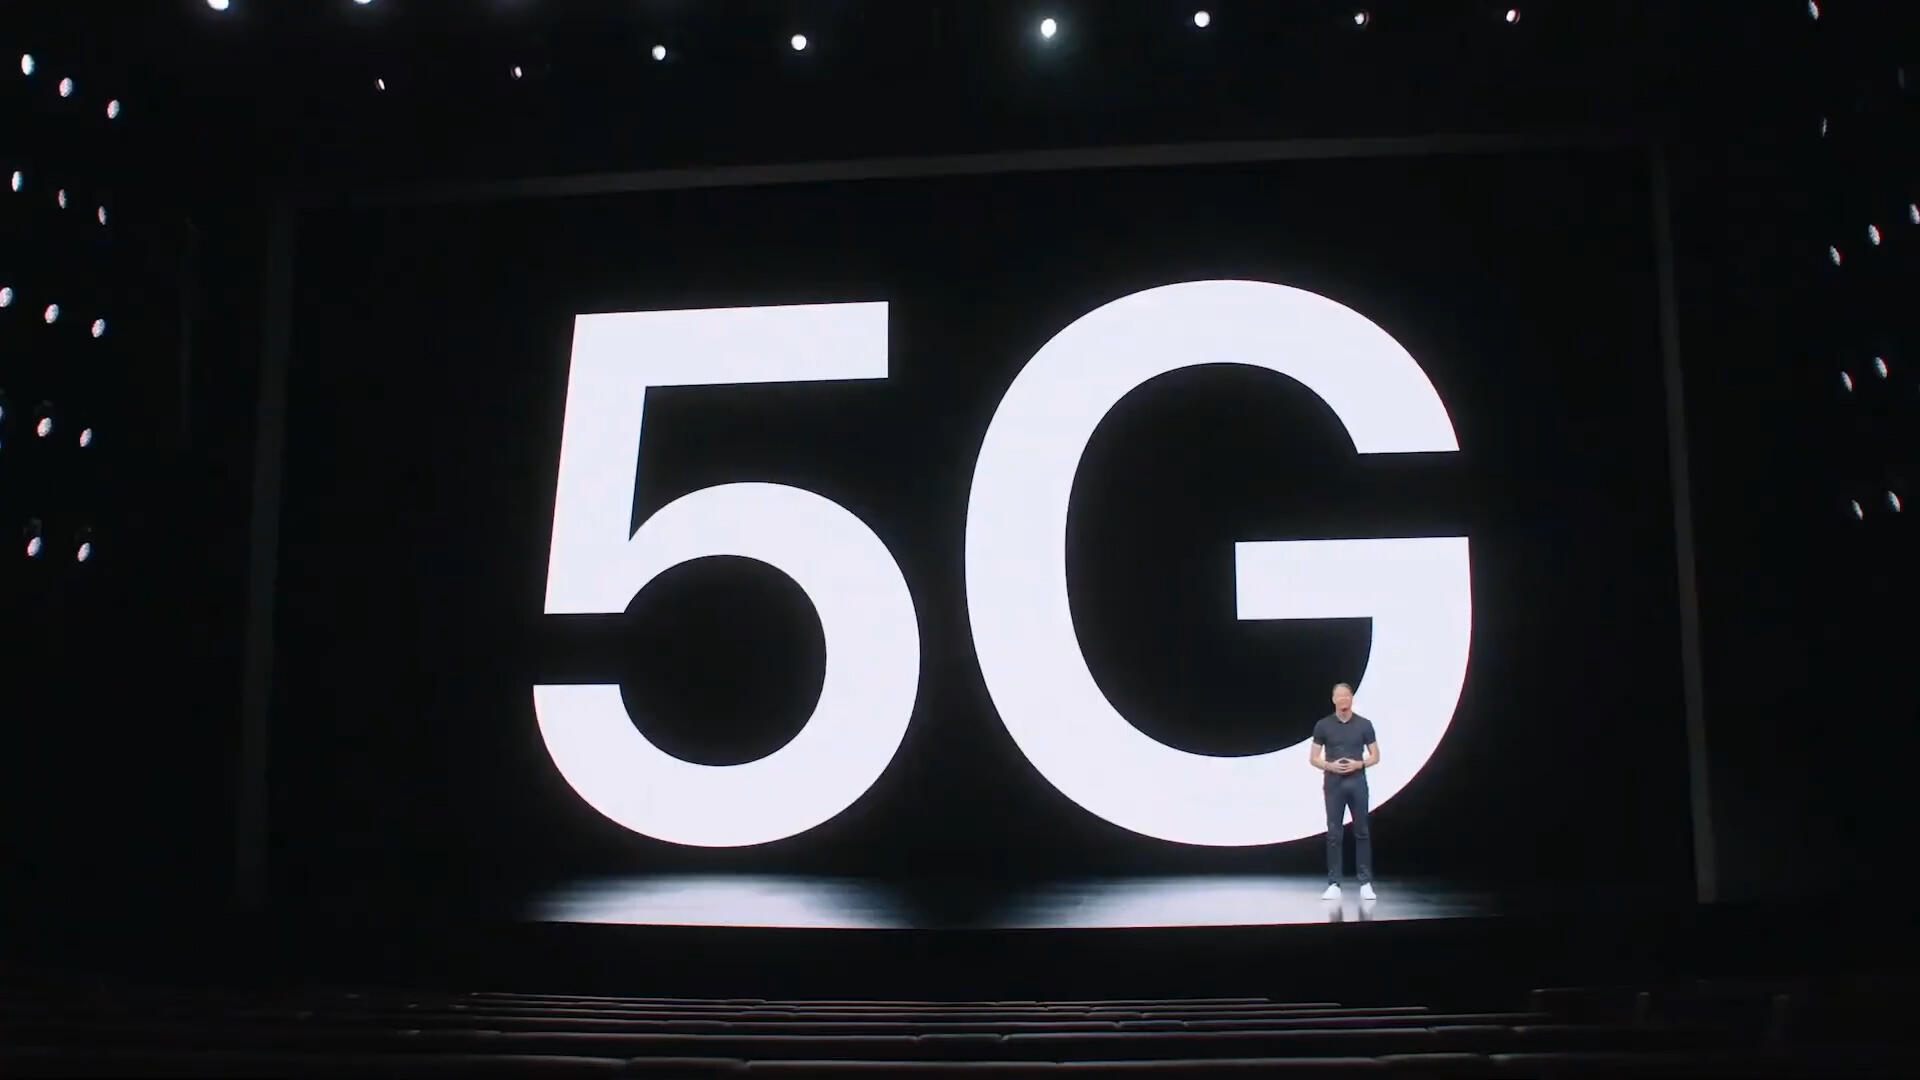 23-apple-iphone-12-pro-5g-2020.png